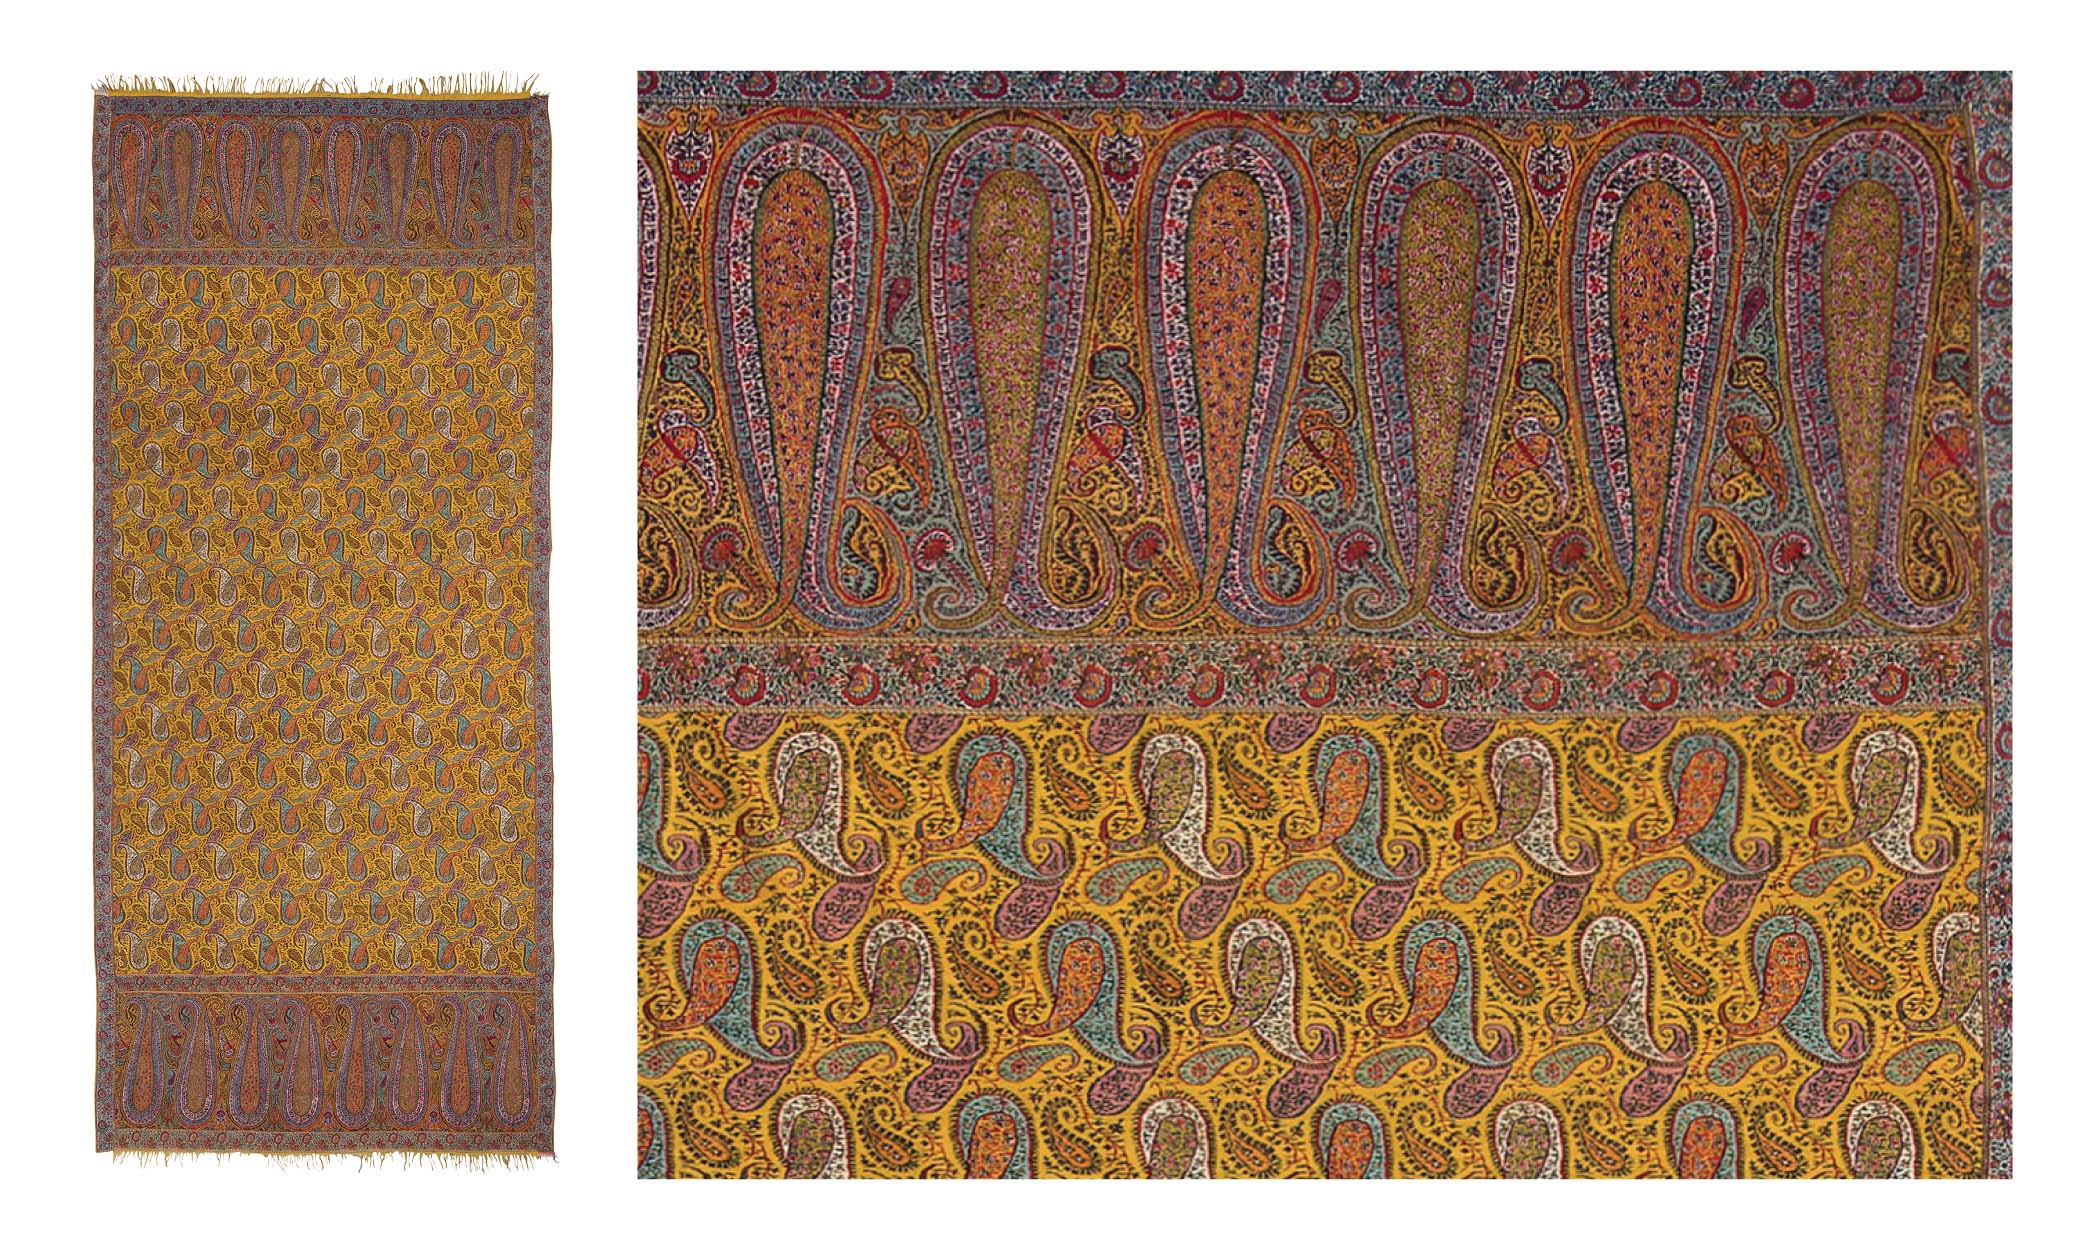 Lot 42: A LONG SHAWL (DOCHALLA). NORTH INDIA, 1830-1835. Estimate: GBP 5,000 - GBP 7,000. Price Realised: GBP 16,250